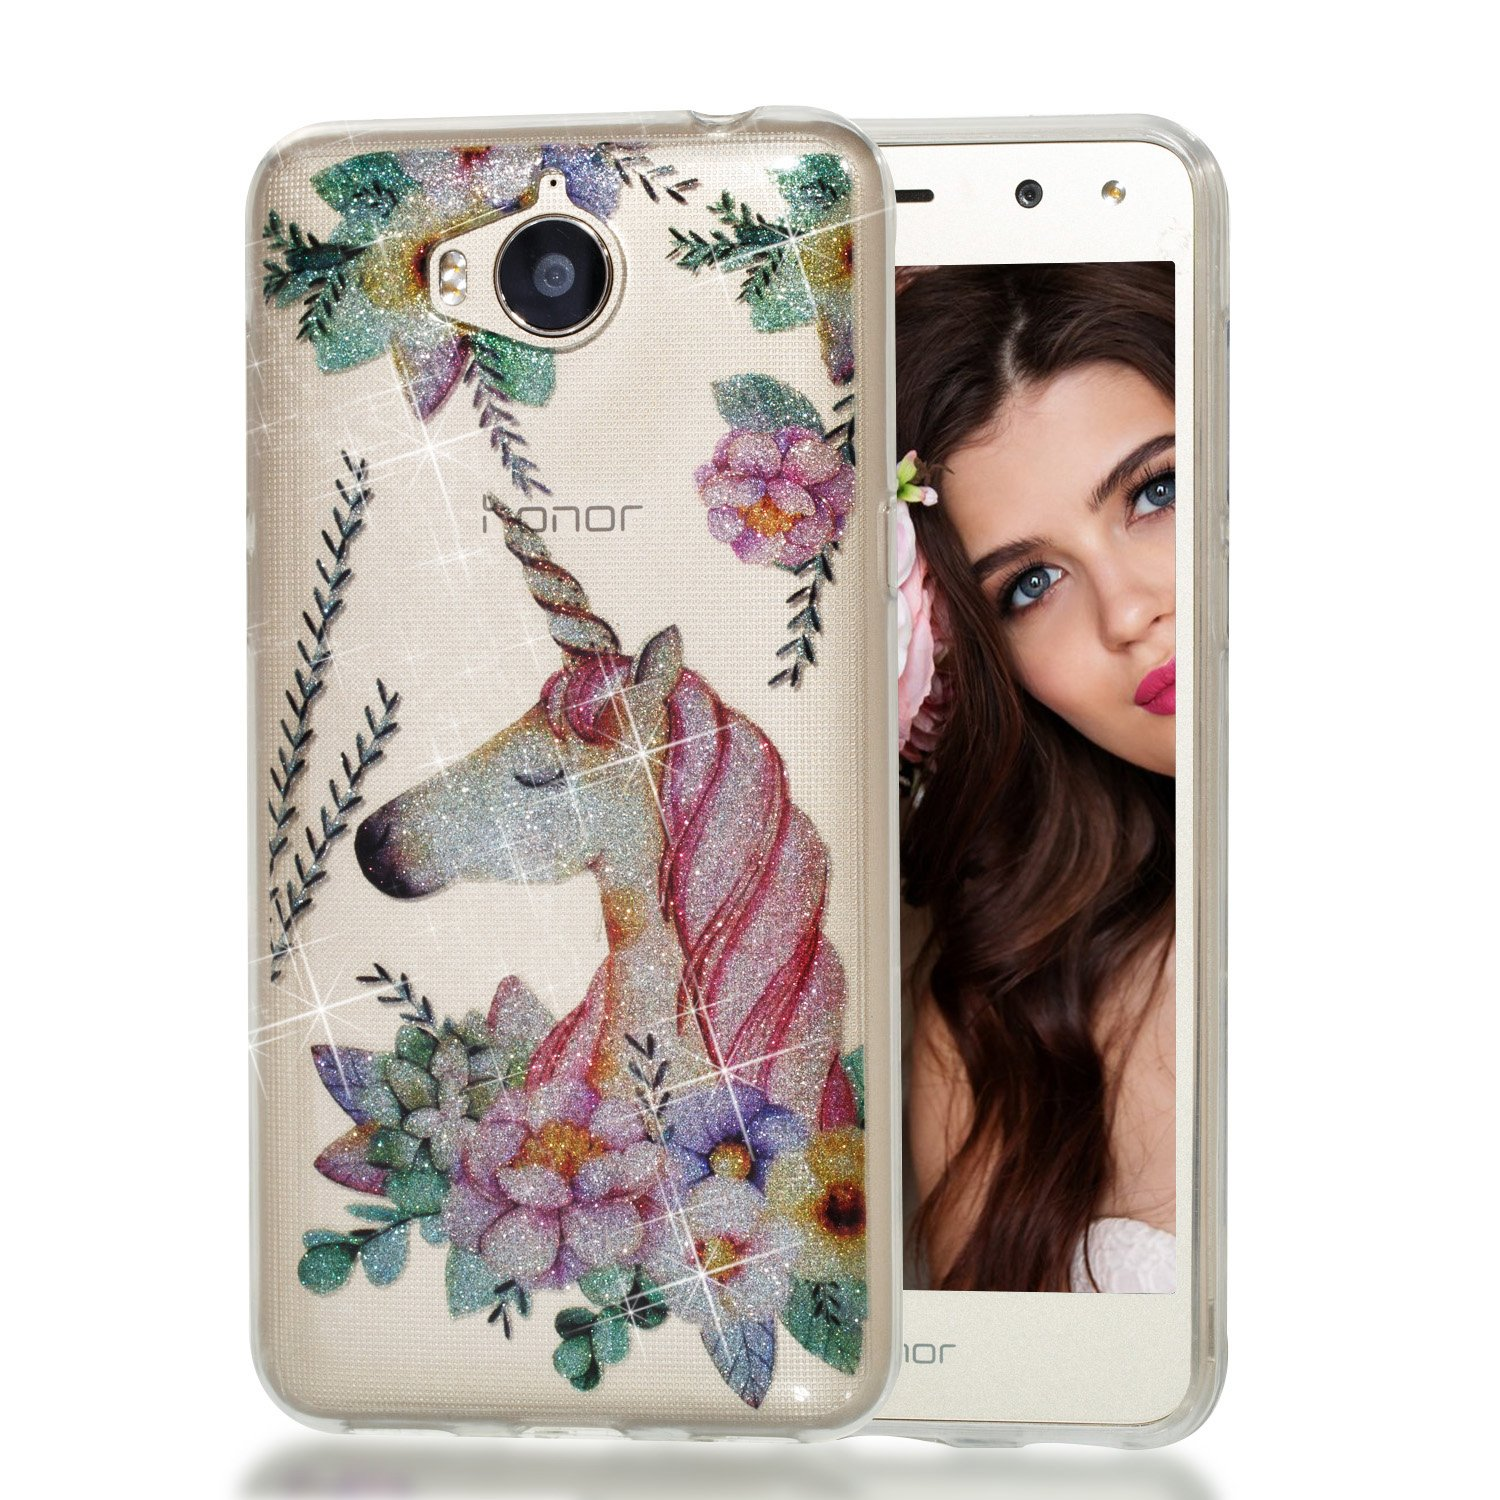 For Huawei Y5 2017/Y6 2017 Transparent Case,Aearl Flash Glitter Silicone Slim Shock Absorption Cover TPU Spark Clear Rubber Soft Shell with Protective Film for Huawei Y6 2017/Y5 2017 - Gold Flower